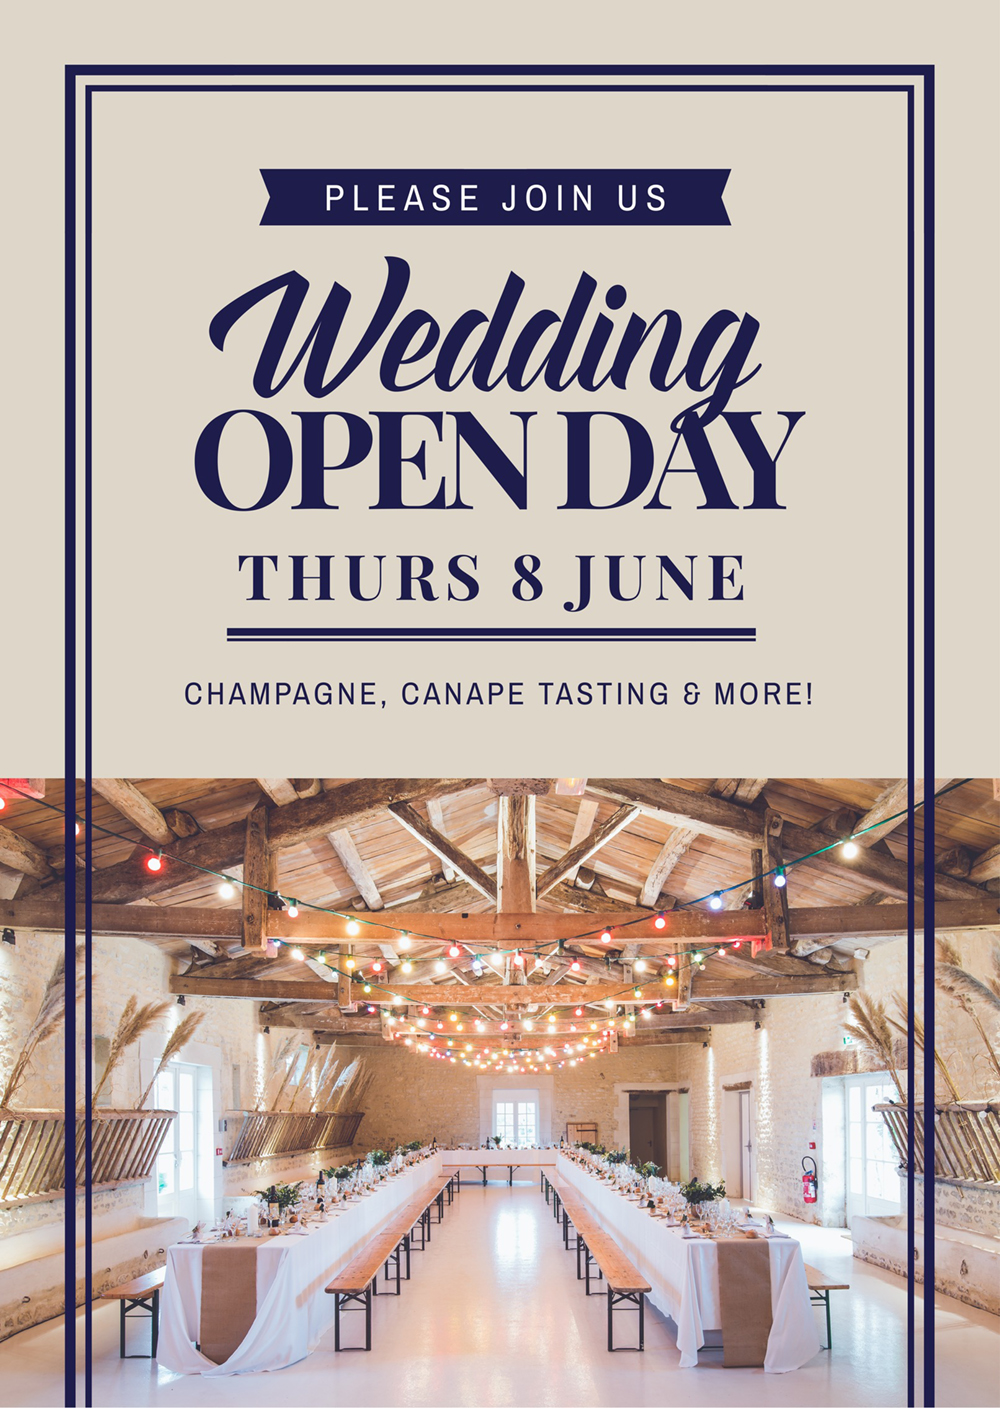 """Wedding """"Open Day"""" - How to Get More Event Bookings at your Venue in 2018 - 21 Easy Tips"""